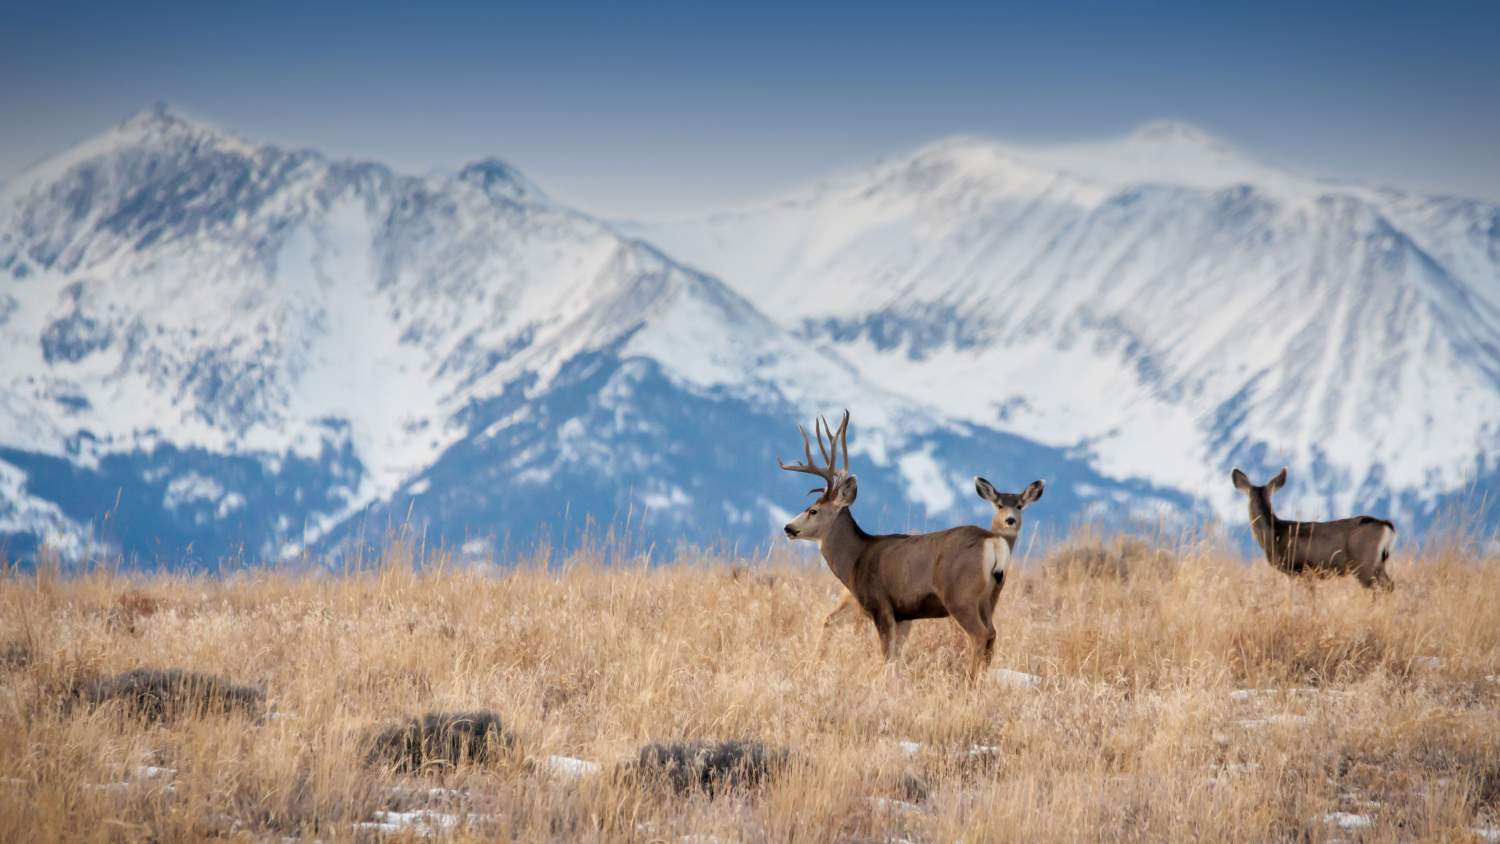 Deer among mountain snowpack